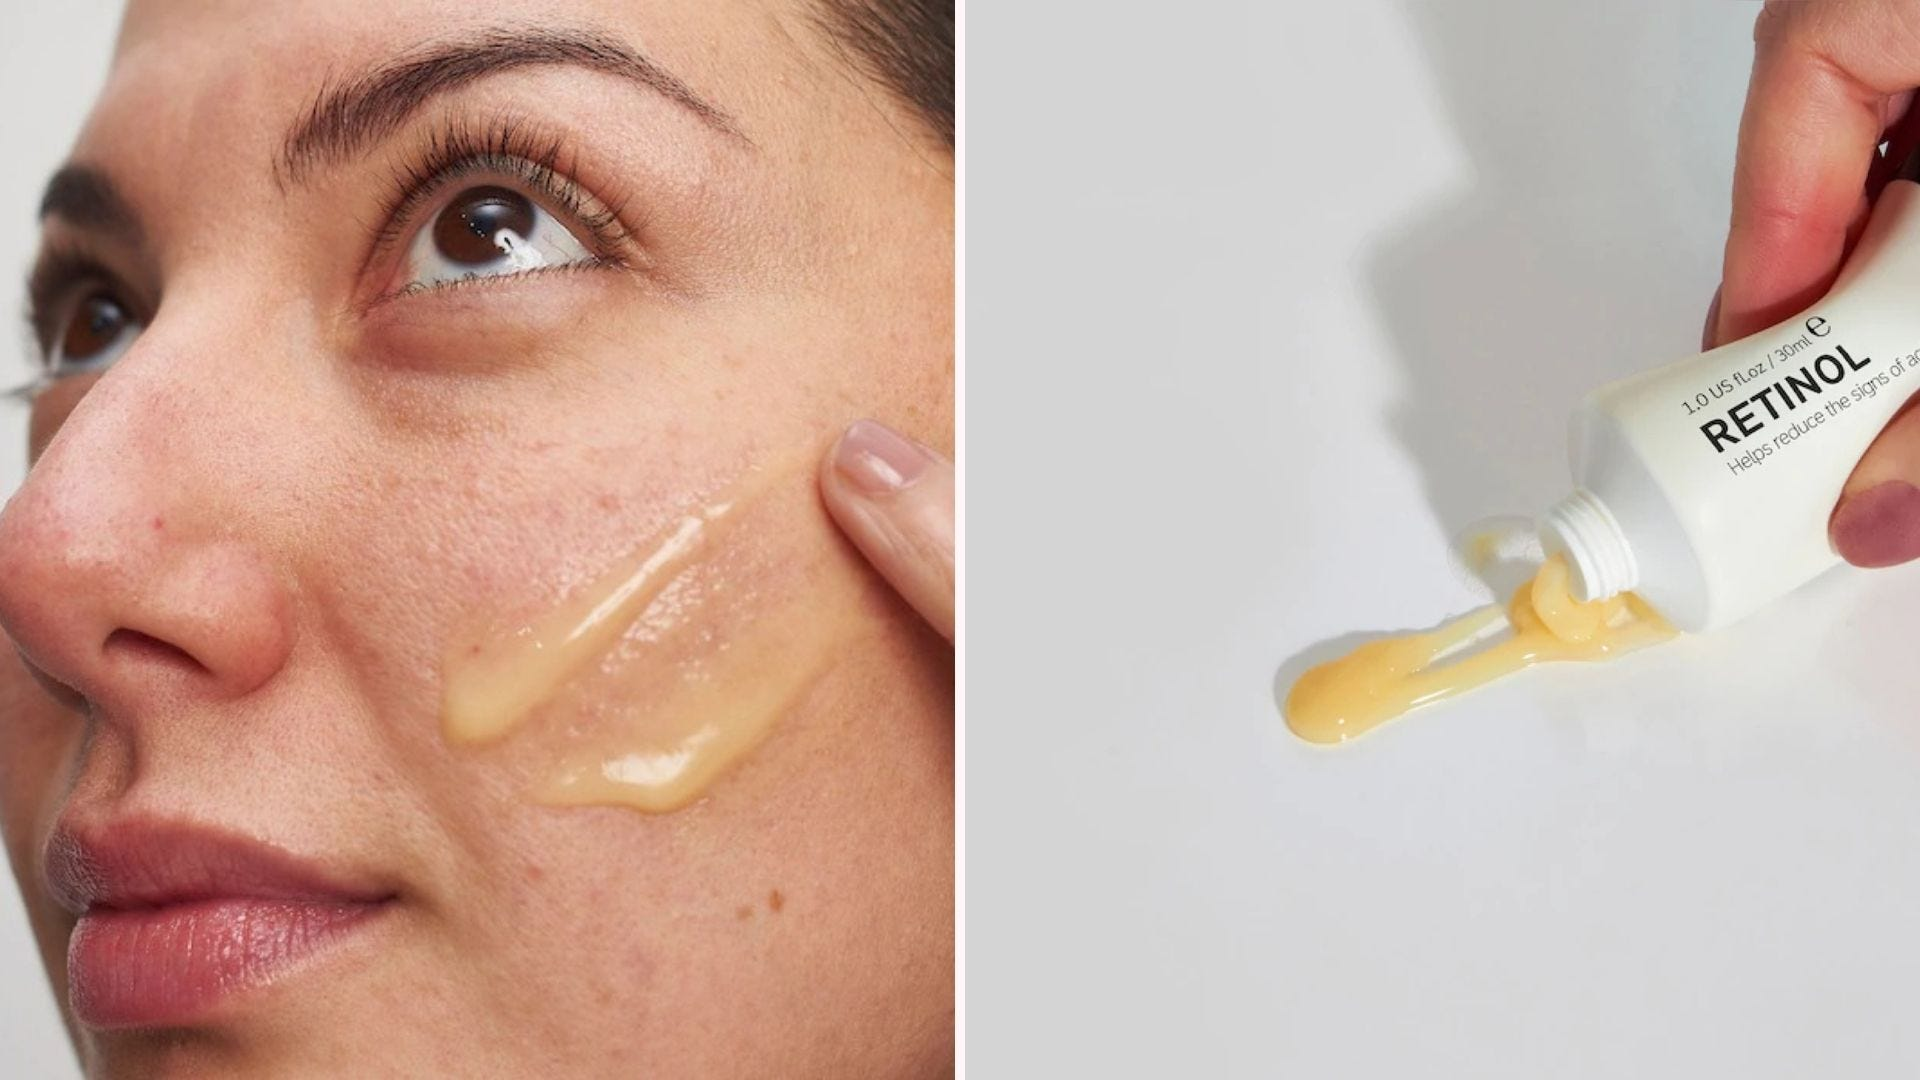 A woman applying a yellow-tinted gel to her cheek; a white tube with yellow gel